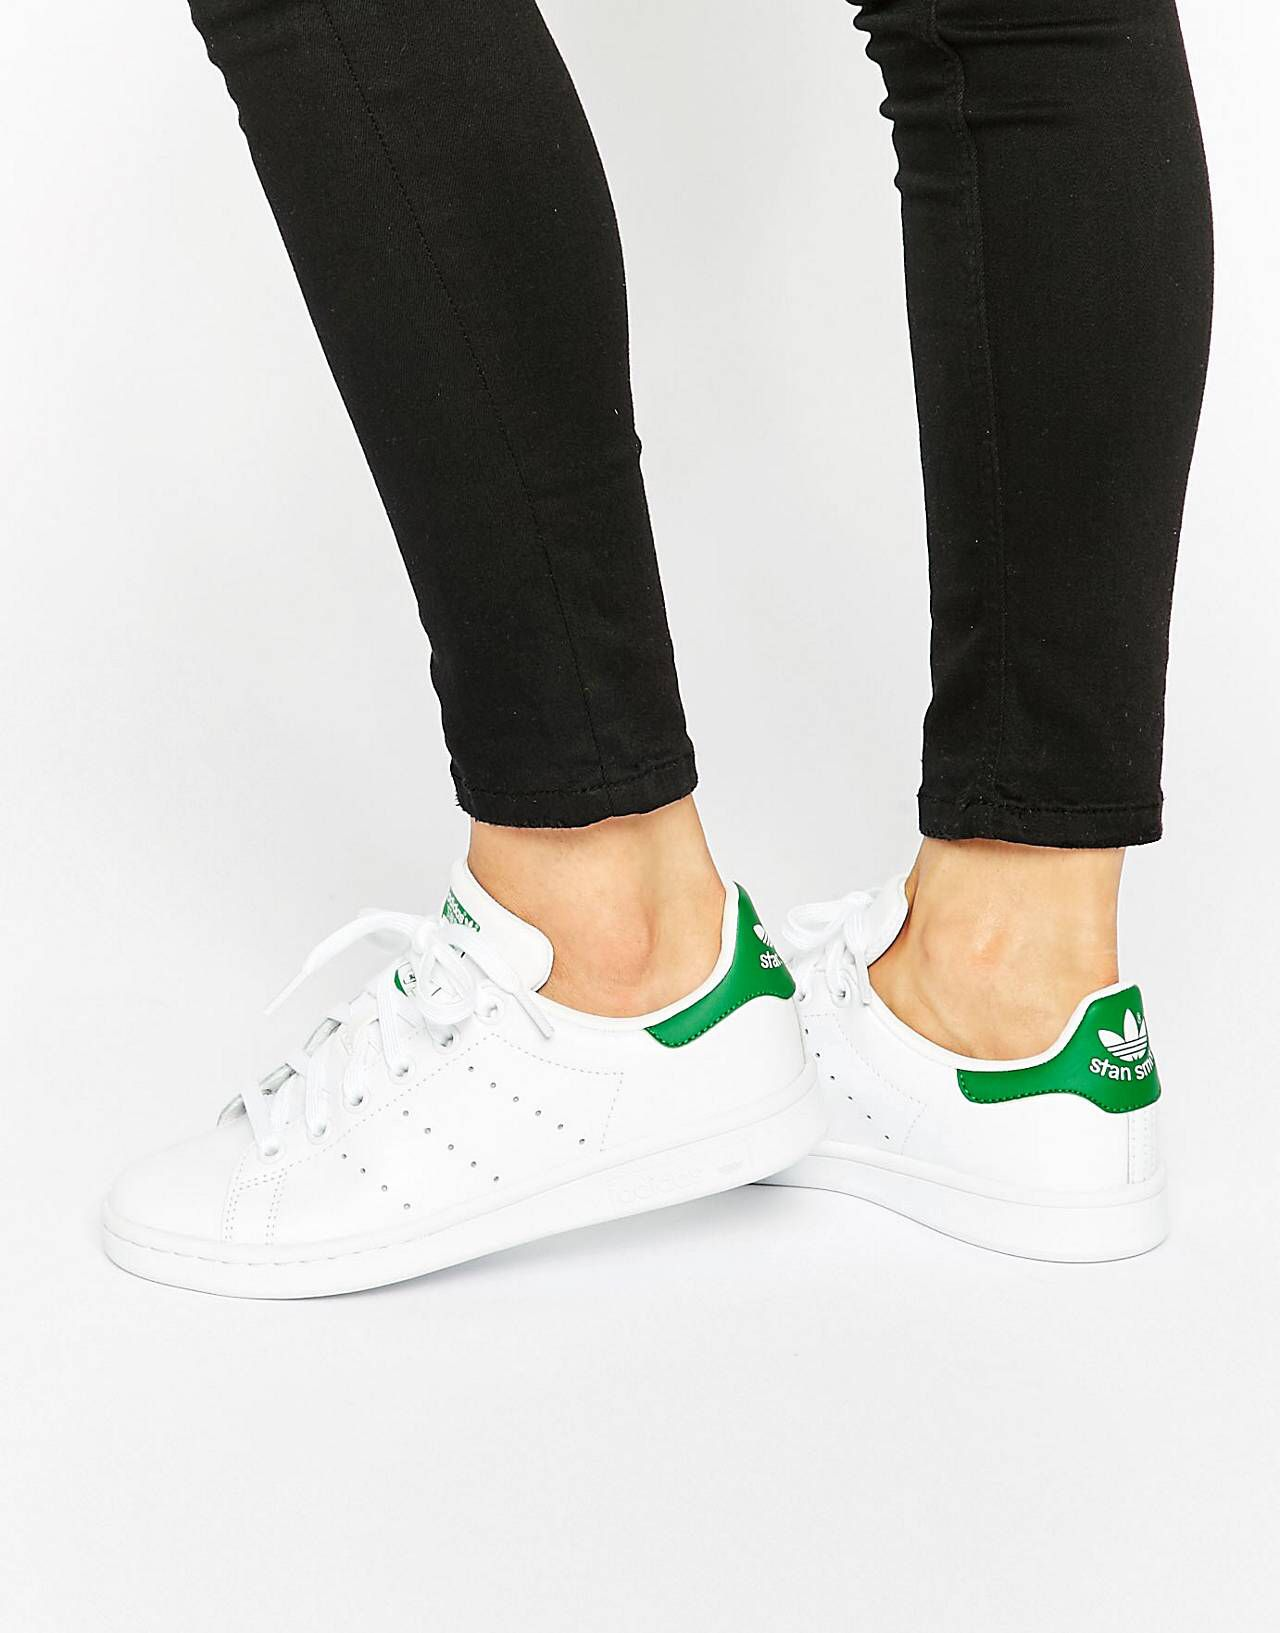 premium selection 672e5 aea64 Stan Smith Verte, Stan Smith Blanche, Adidas Verte,